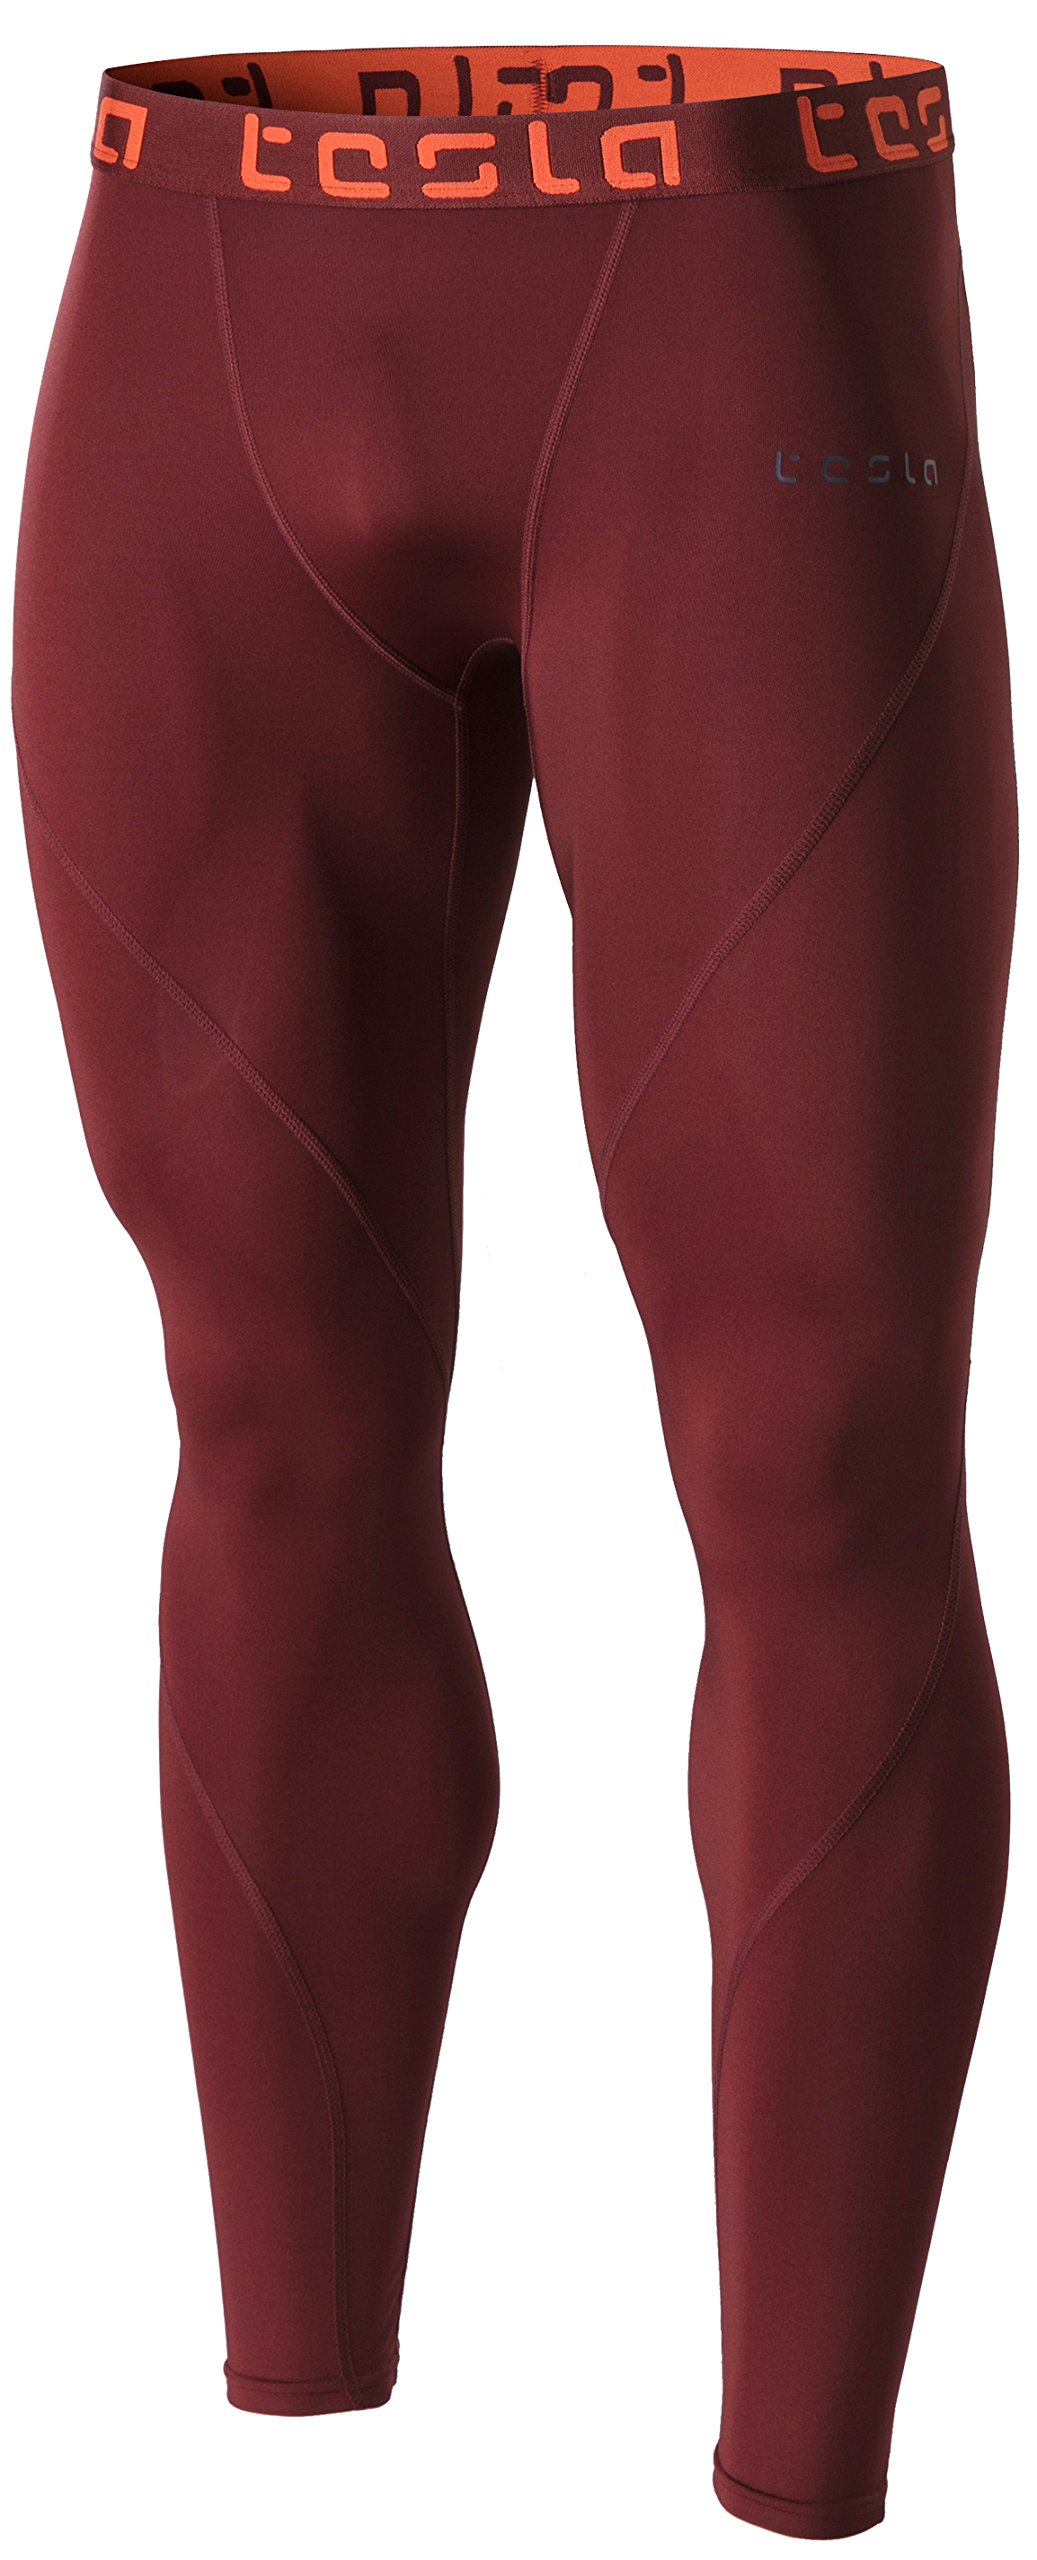 TSLA Men's Compression Pants Running Baselayer Cool Dry Sports Tights, Athletic(mup19) - Brick, Large by TSLA